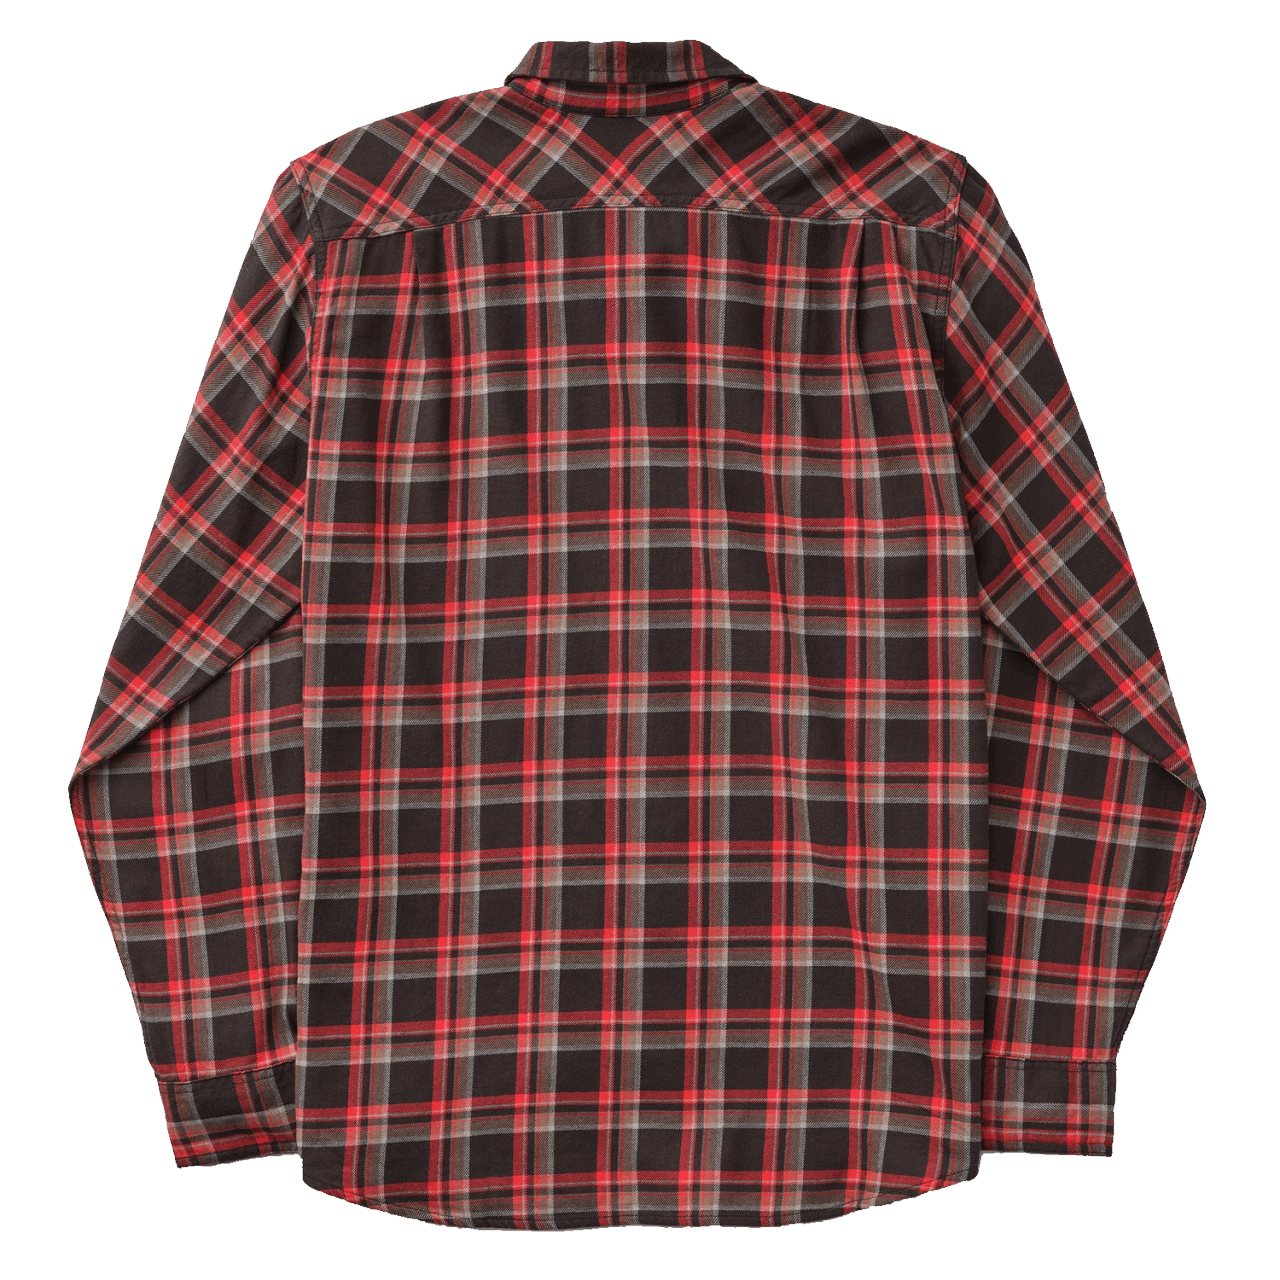 Filson Scout Shirt Shirt black-red-brown